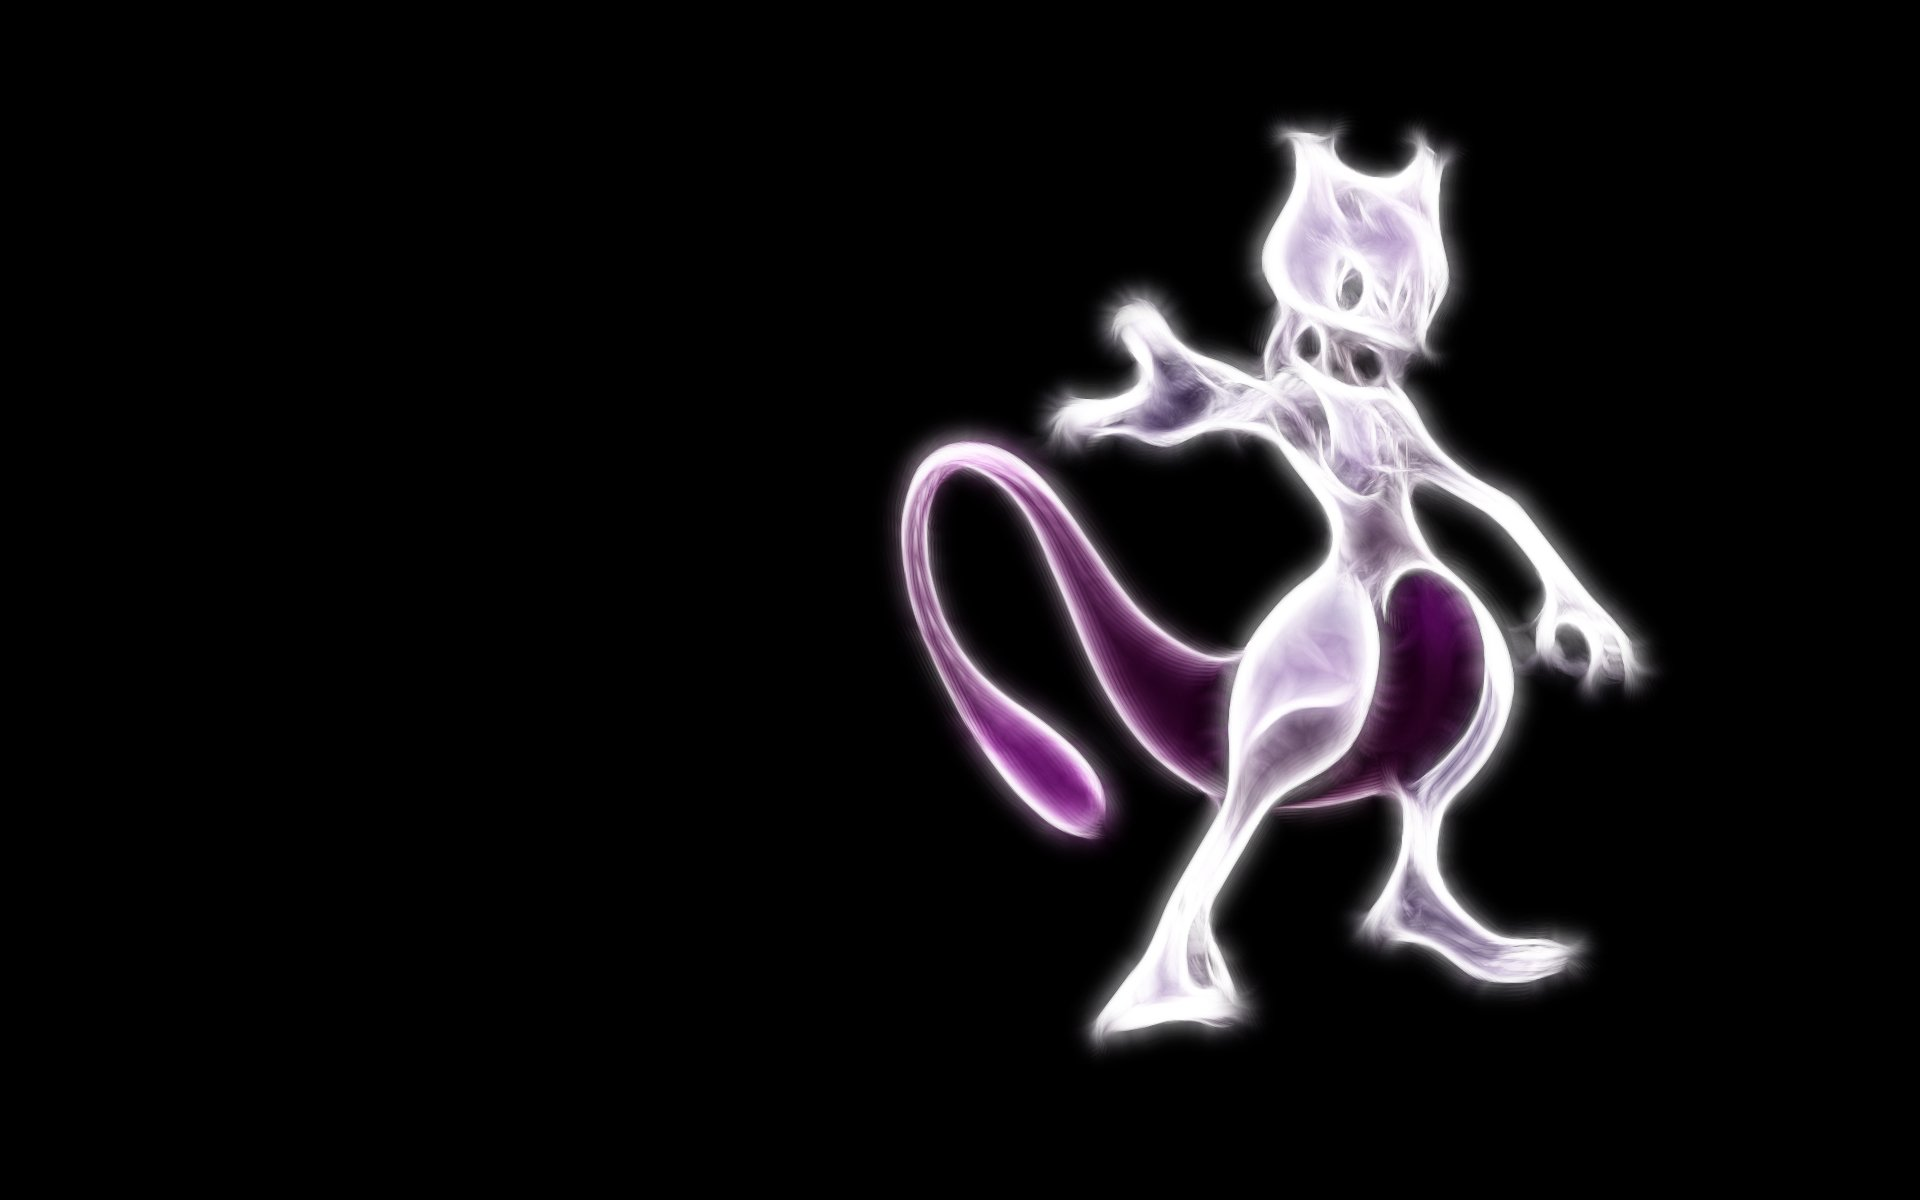 Video Game - Pokémon  Mewtwo (Pokémon) Wallpaper